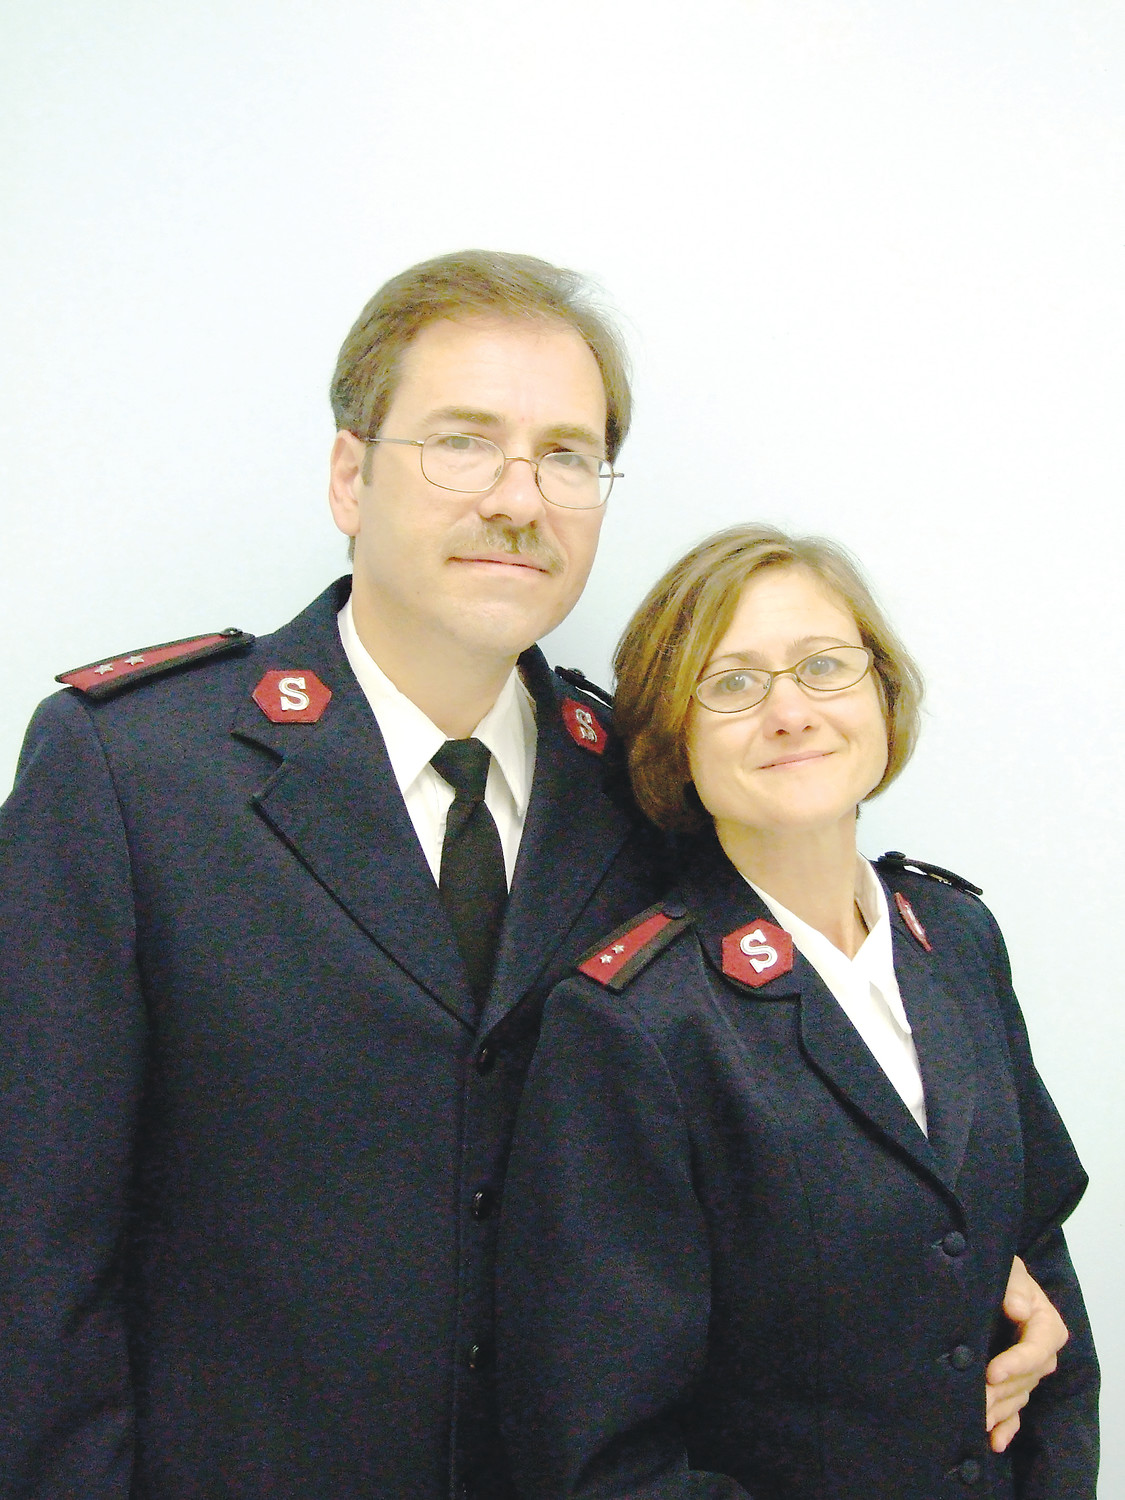 Captain Mark Czanderna, with wife Sherry, is fluent in several languages and ready to learn more.